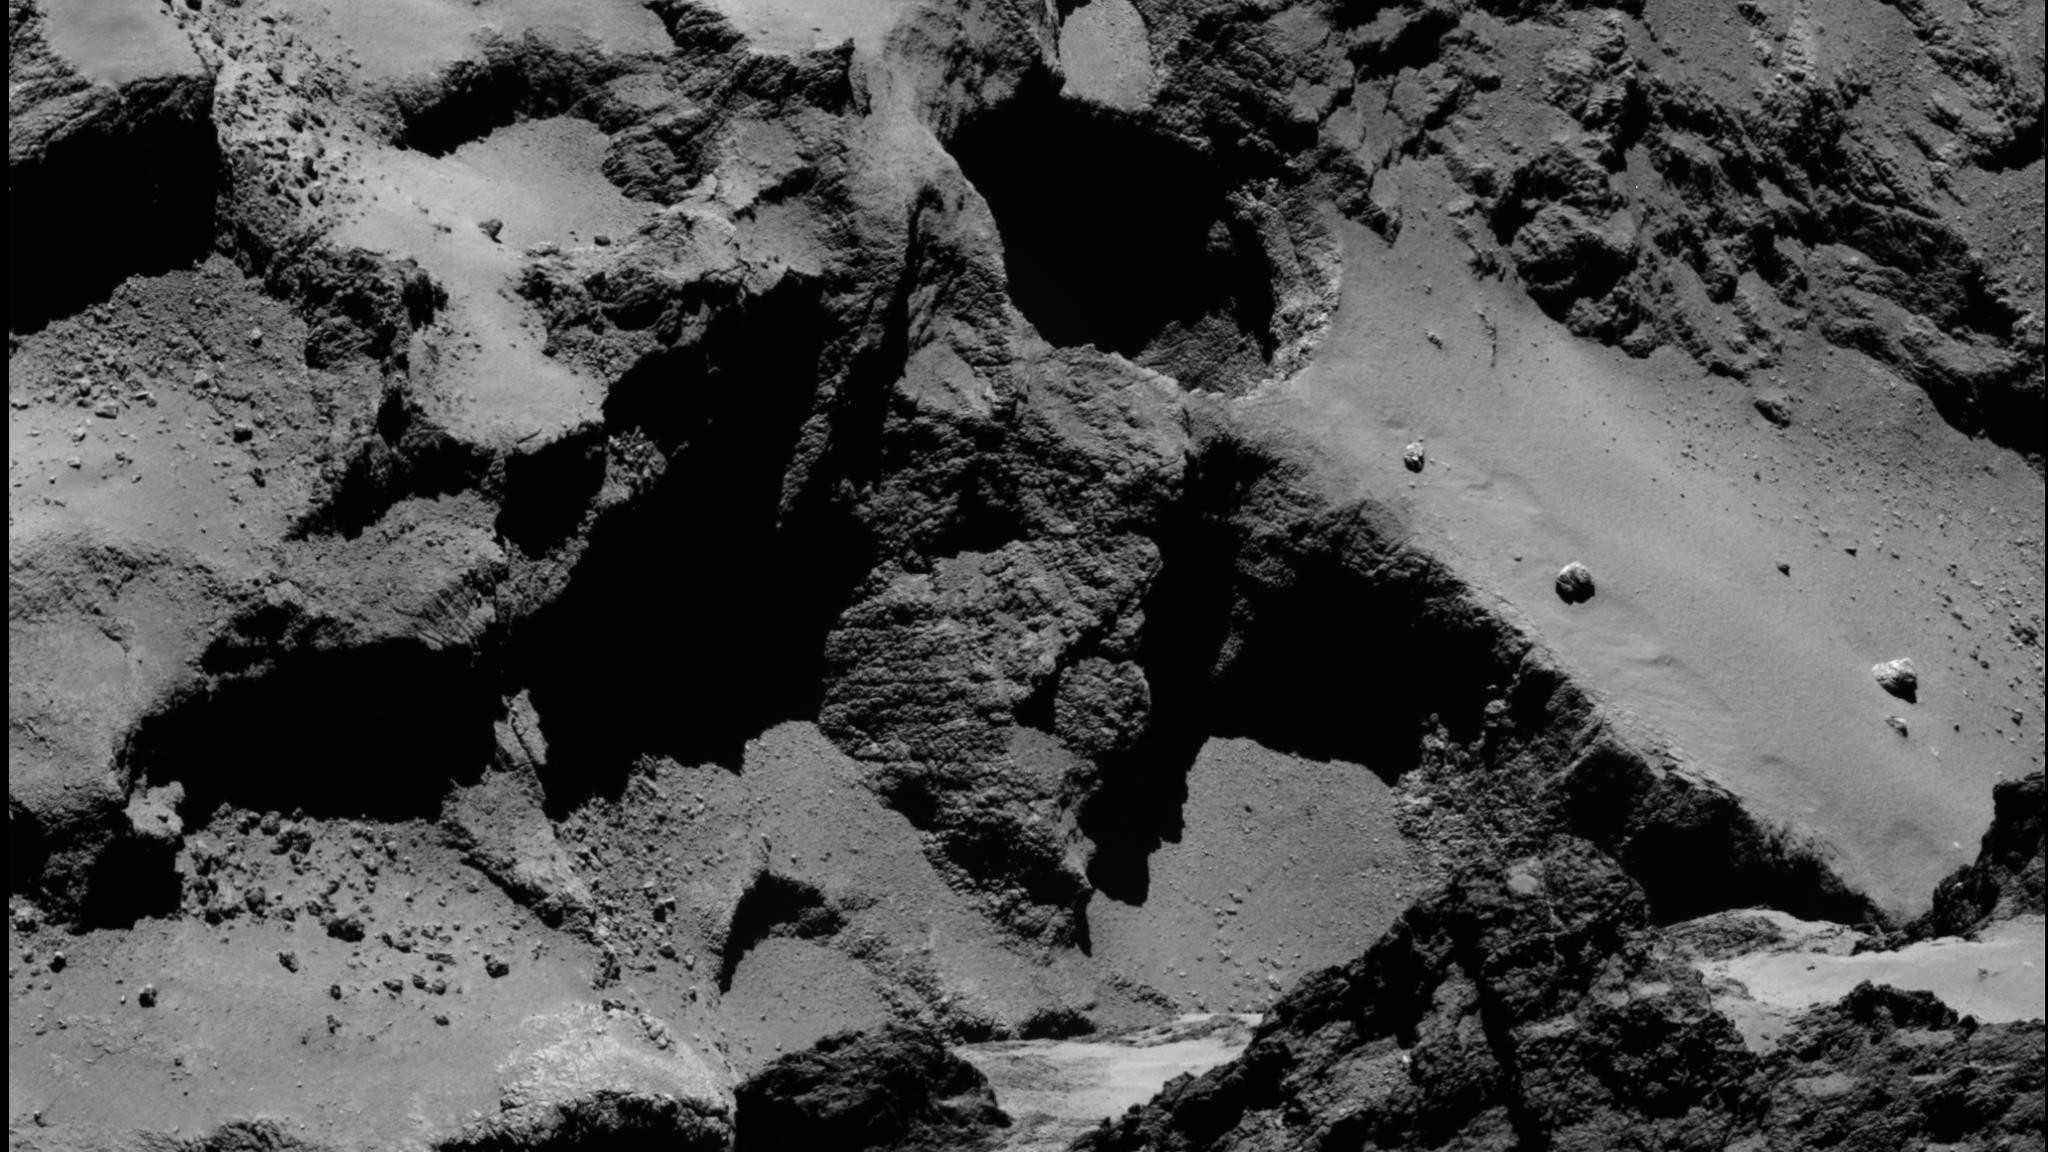 These Scientists Say There Could Be Life on Rosetta's Comet